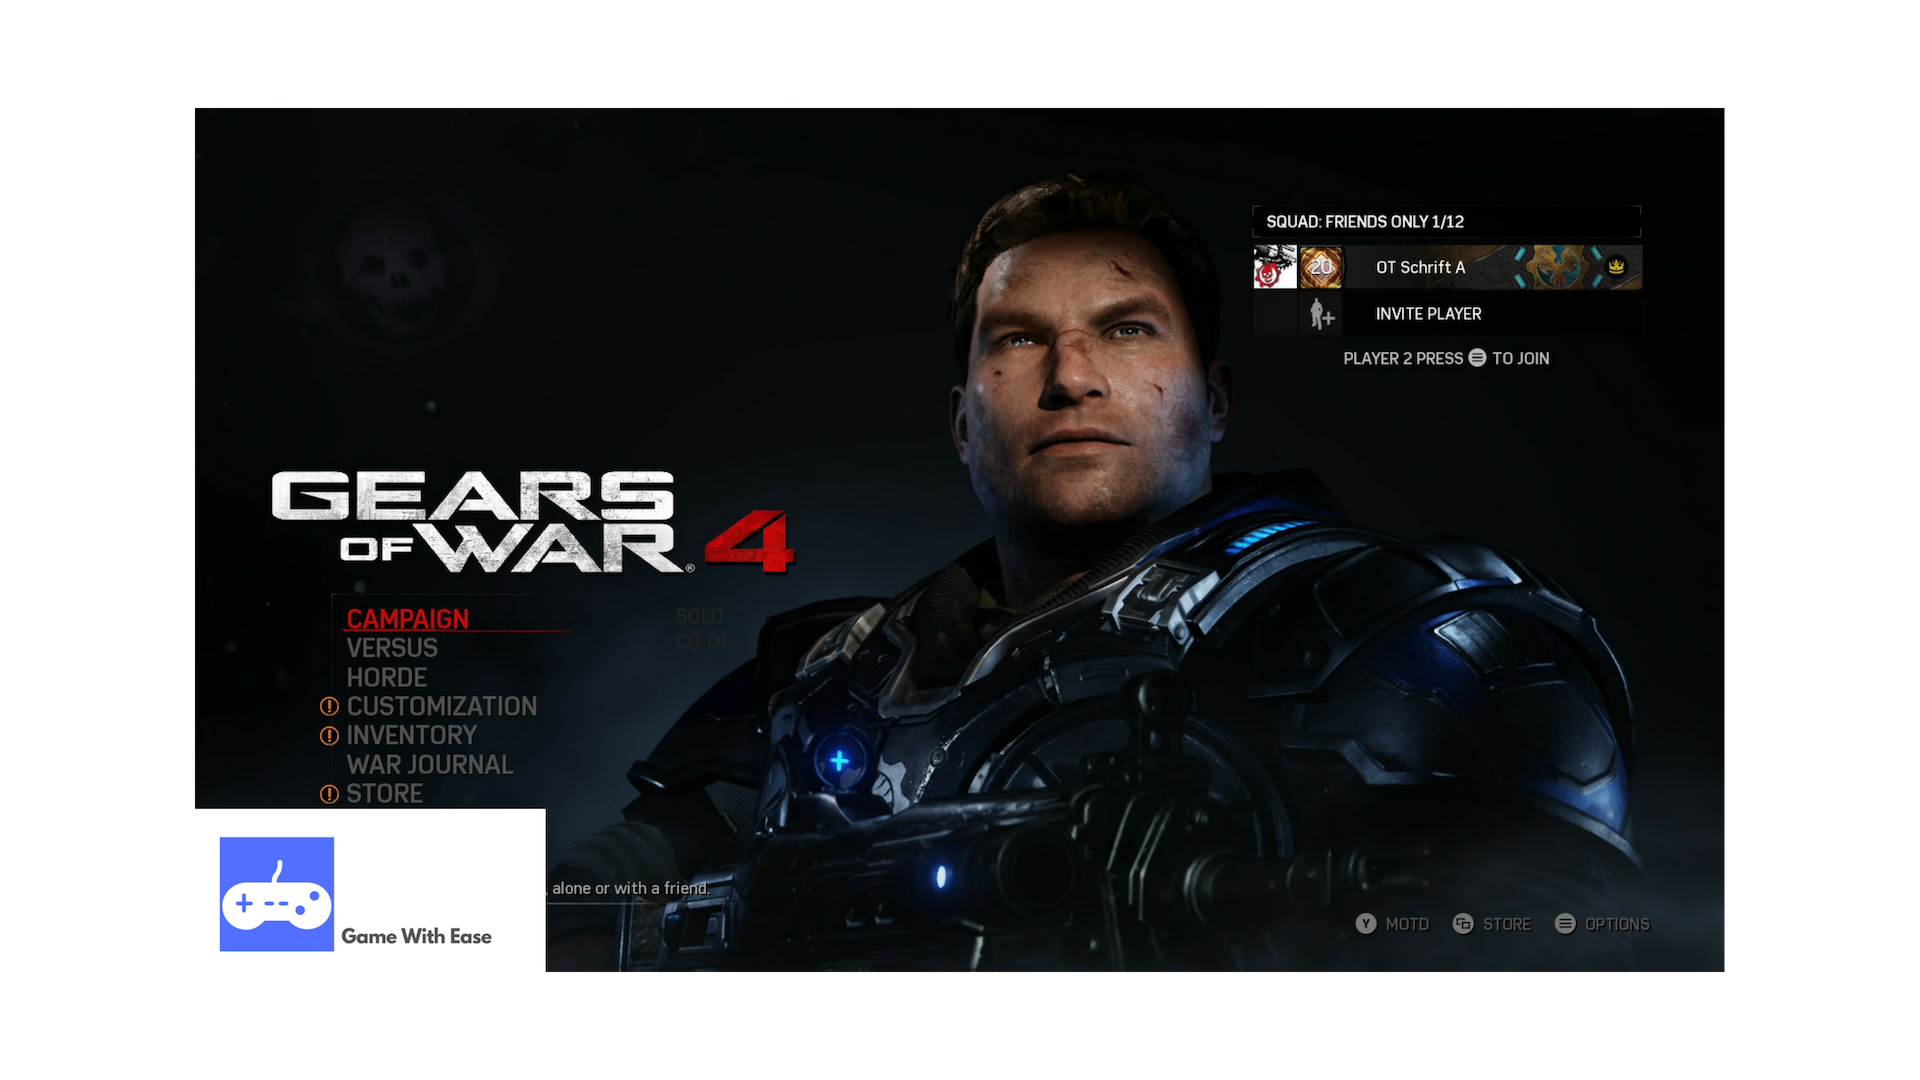 gears of war 4 main menu